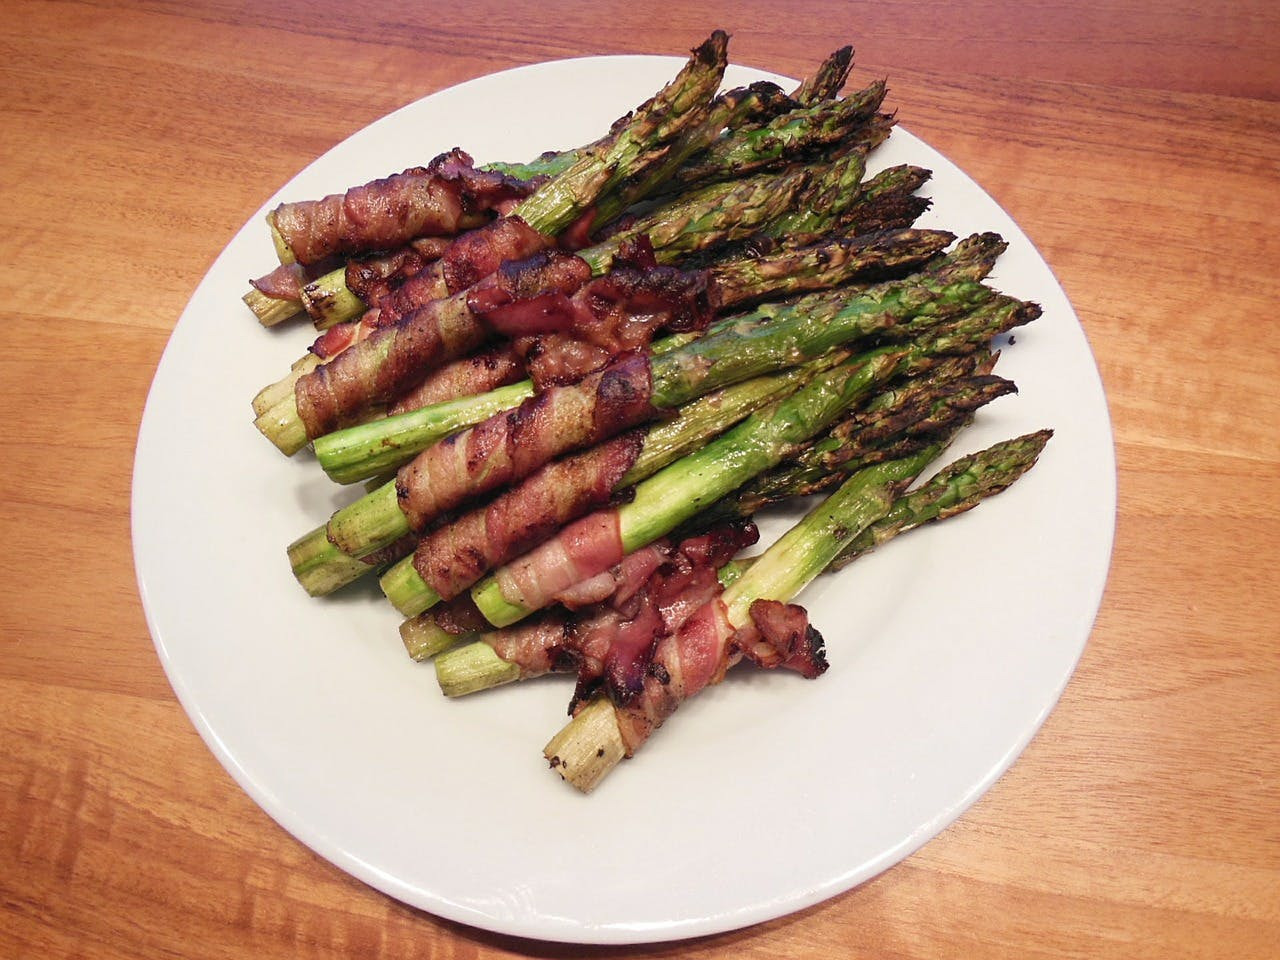 White plate full of bacon-wrapped asparagus